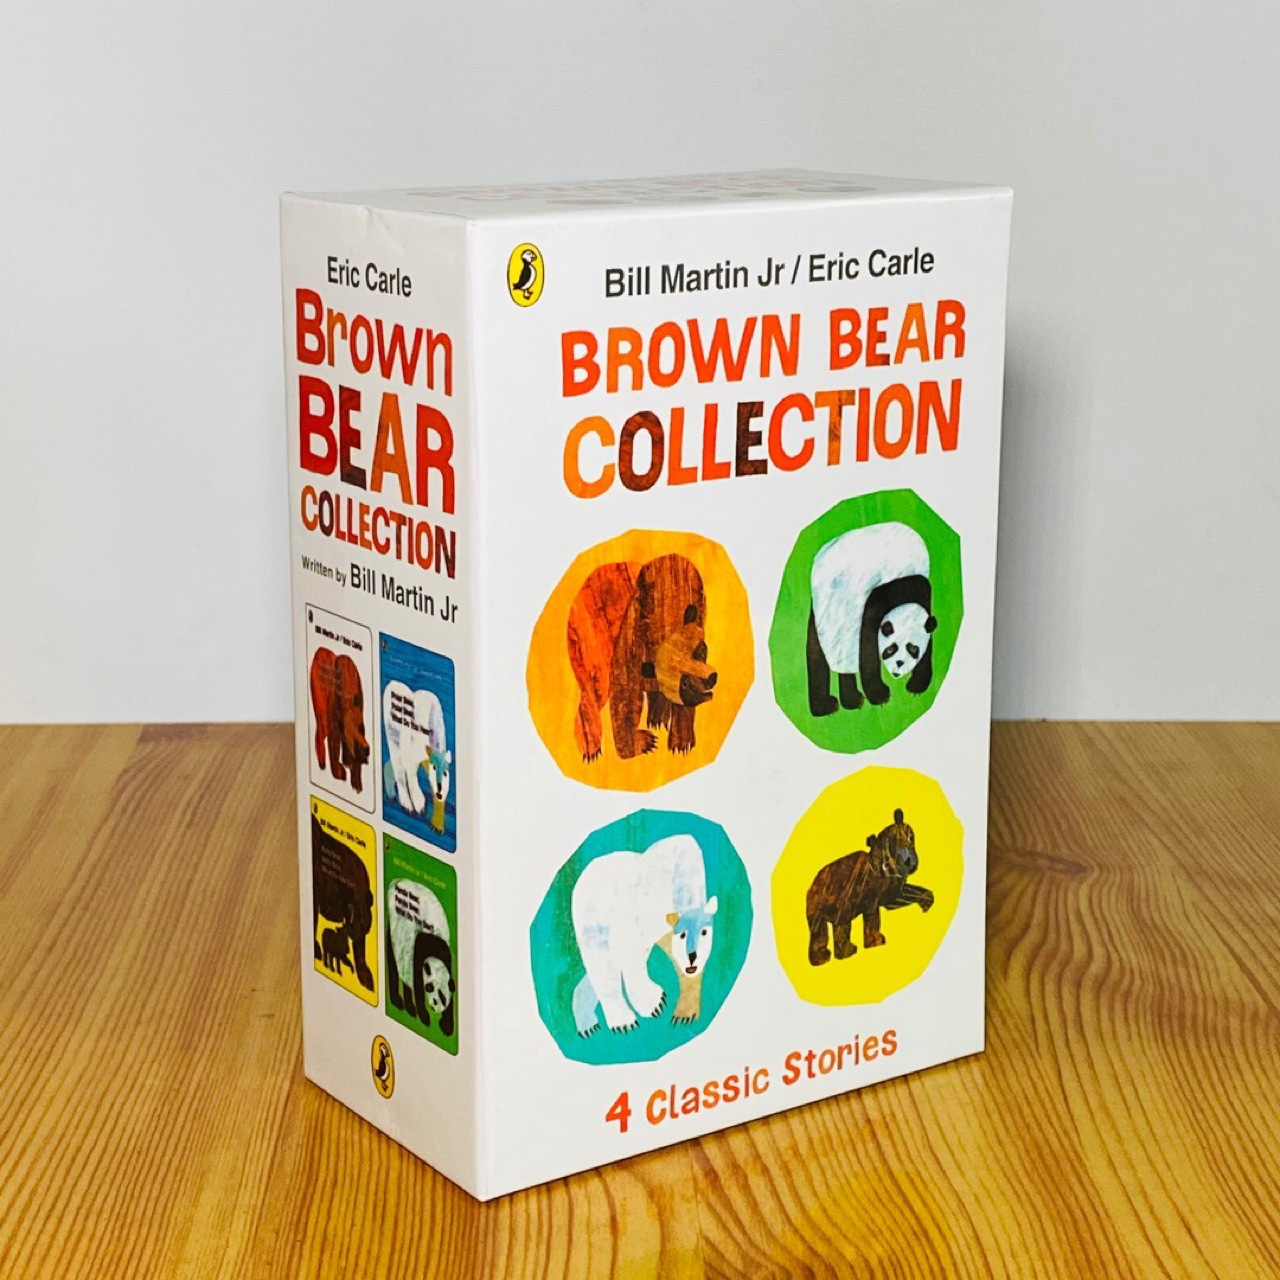 eric carle children book Paperback Boxed Set 4 volumes Brown Bear Collection Paperboard book